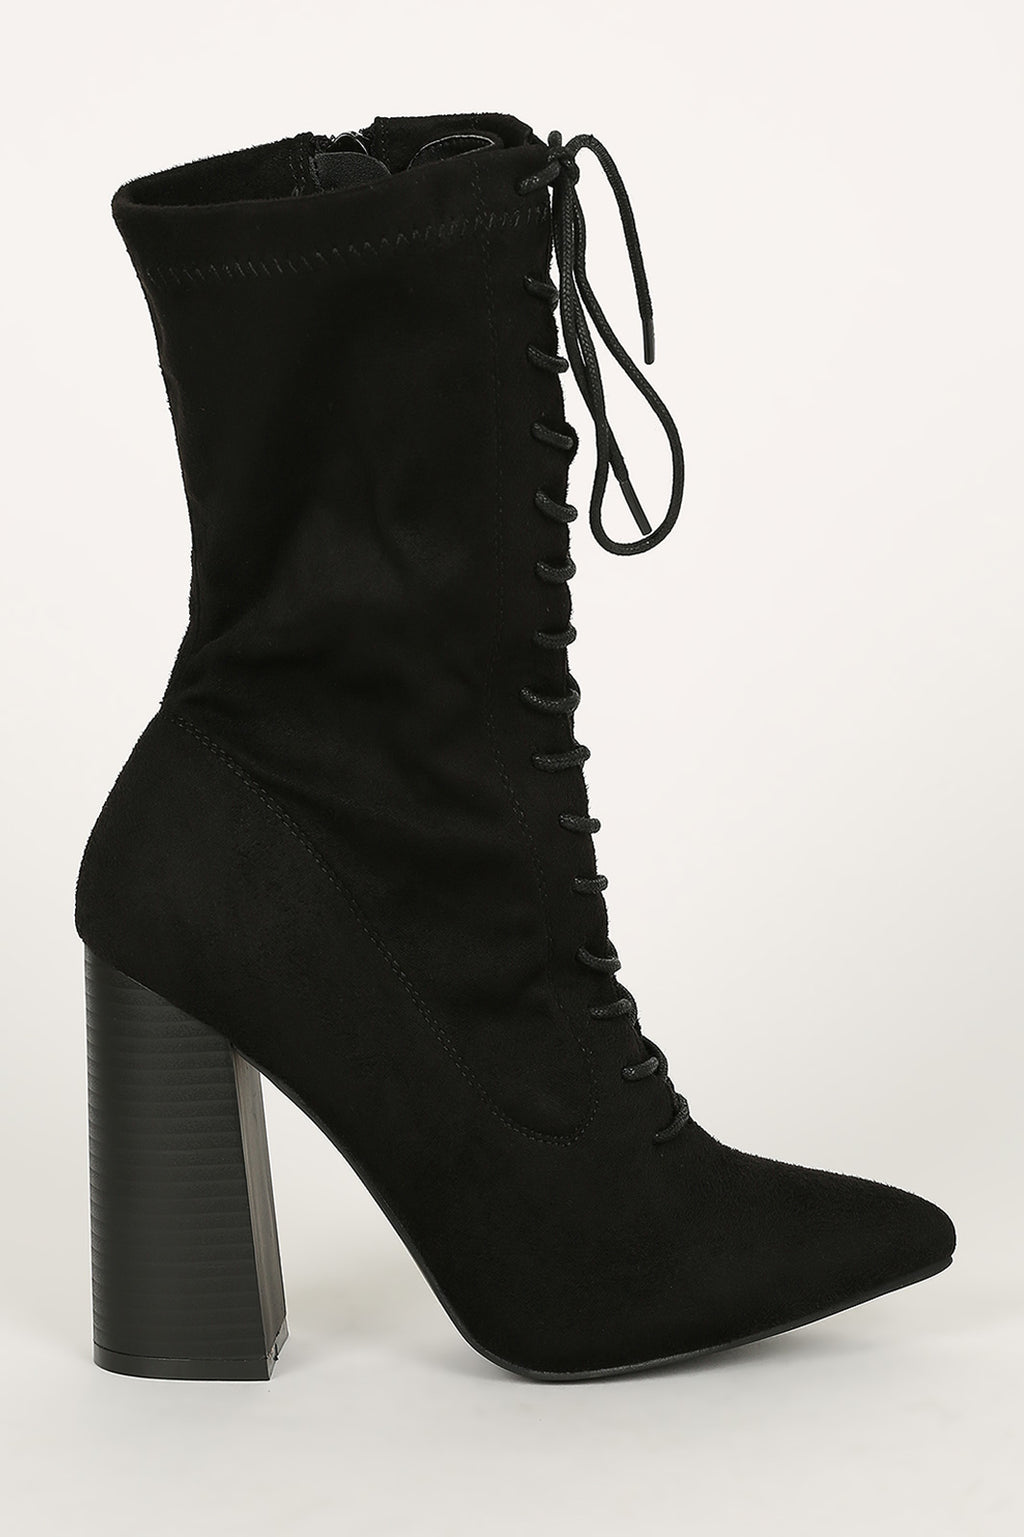 Ransom - Black Lace Up Booties